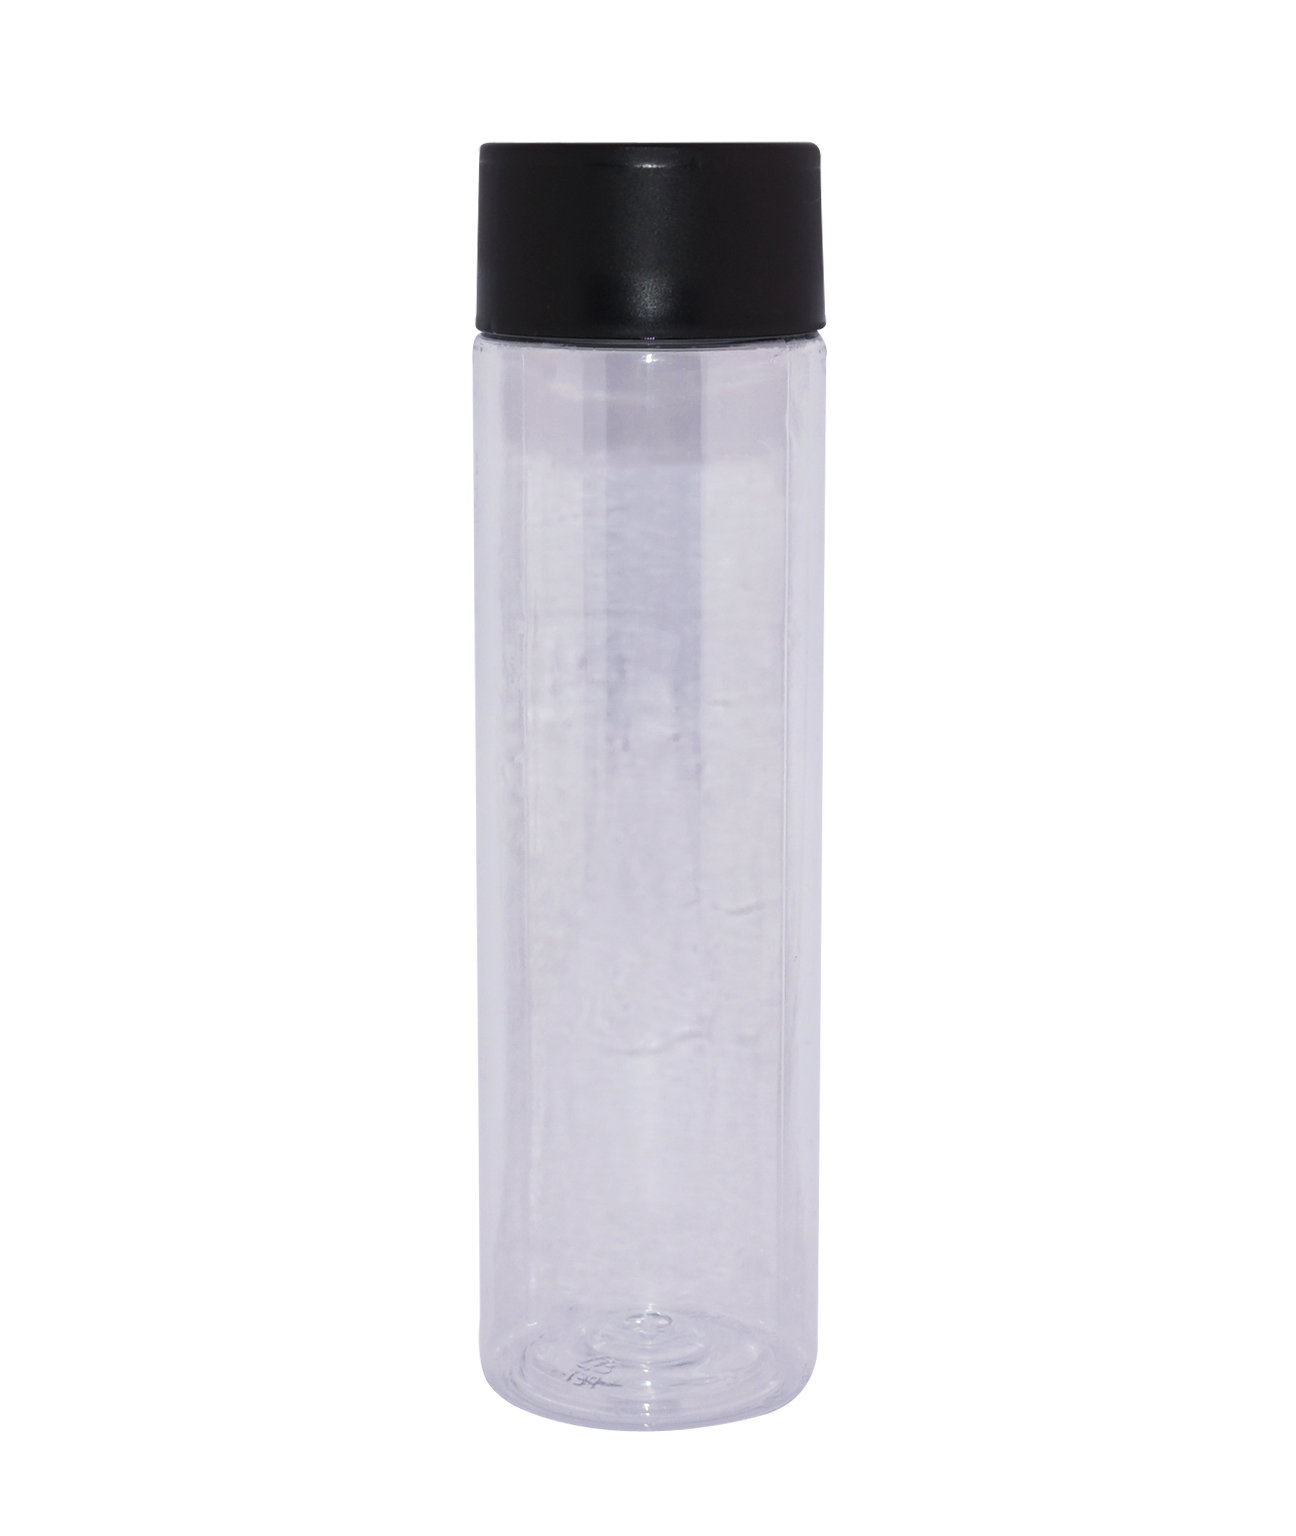 Cylinder PET plastic beverage bottle with double walls cap